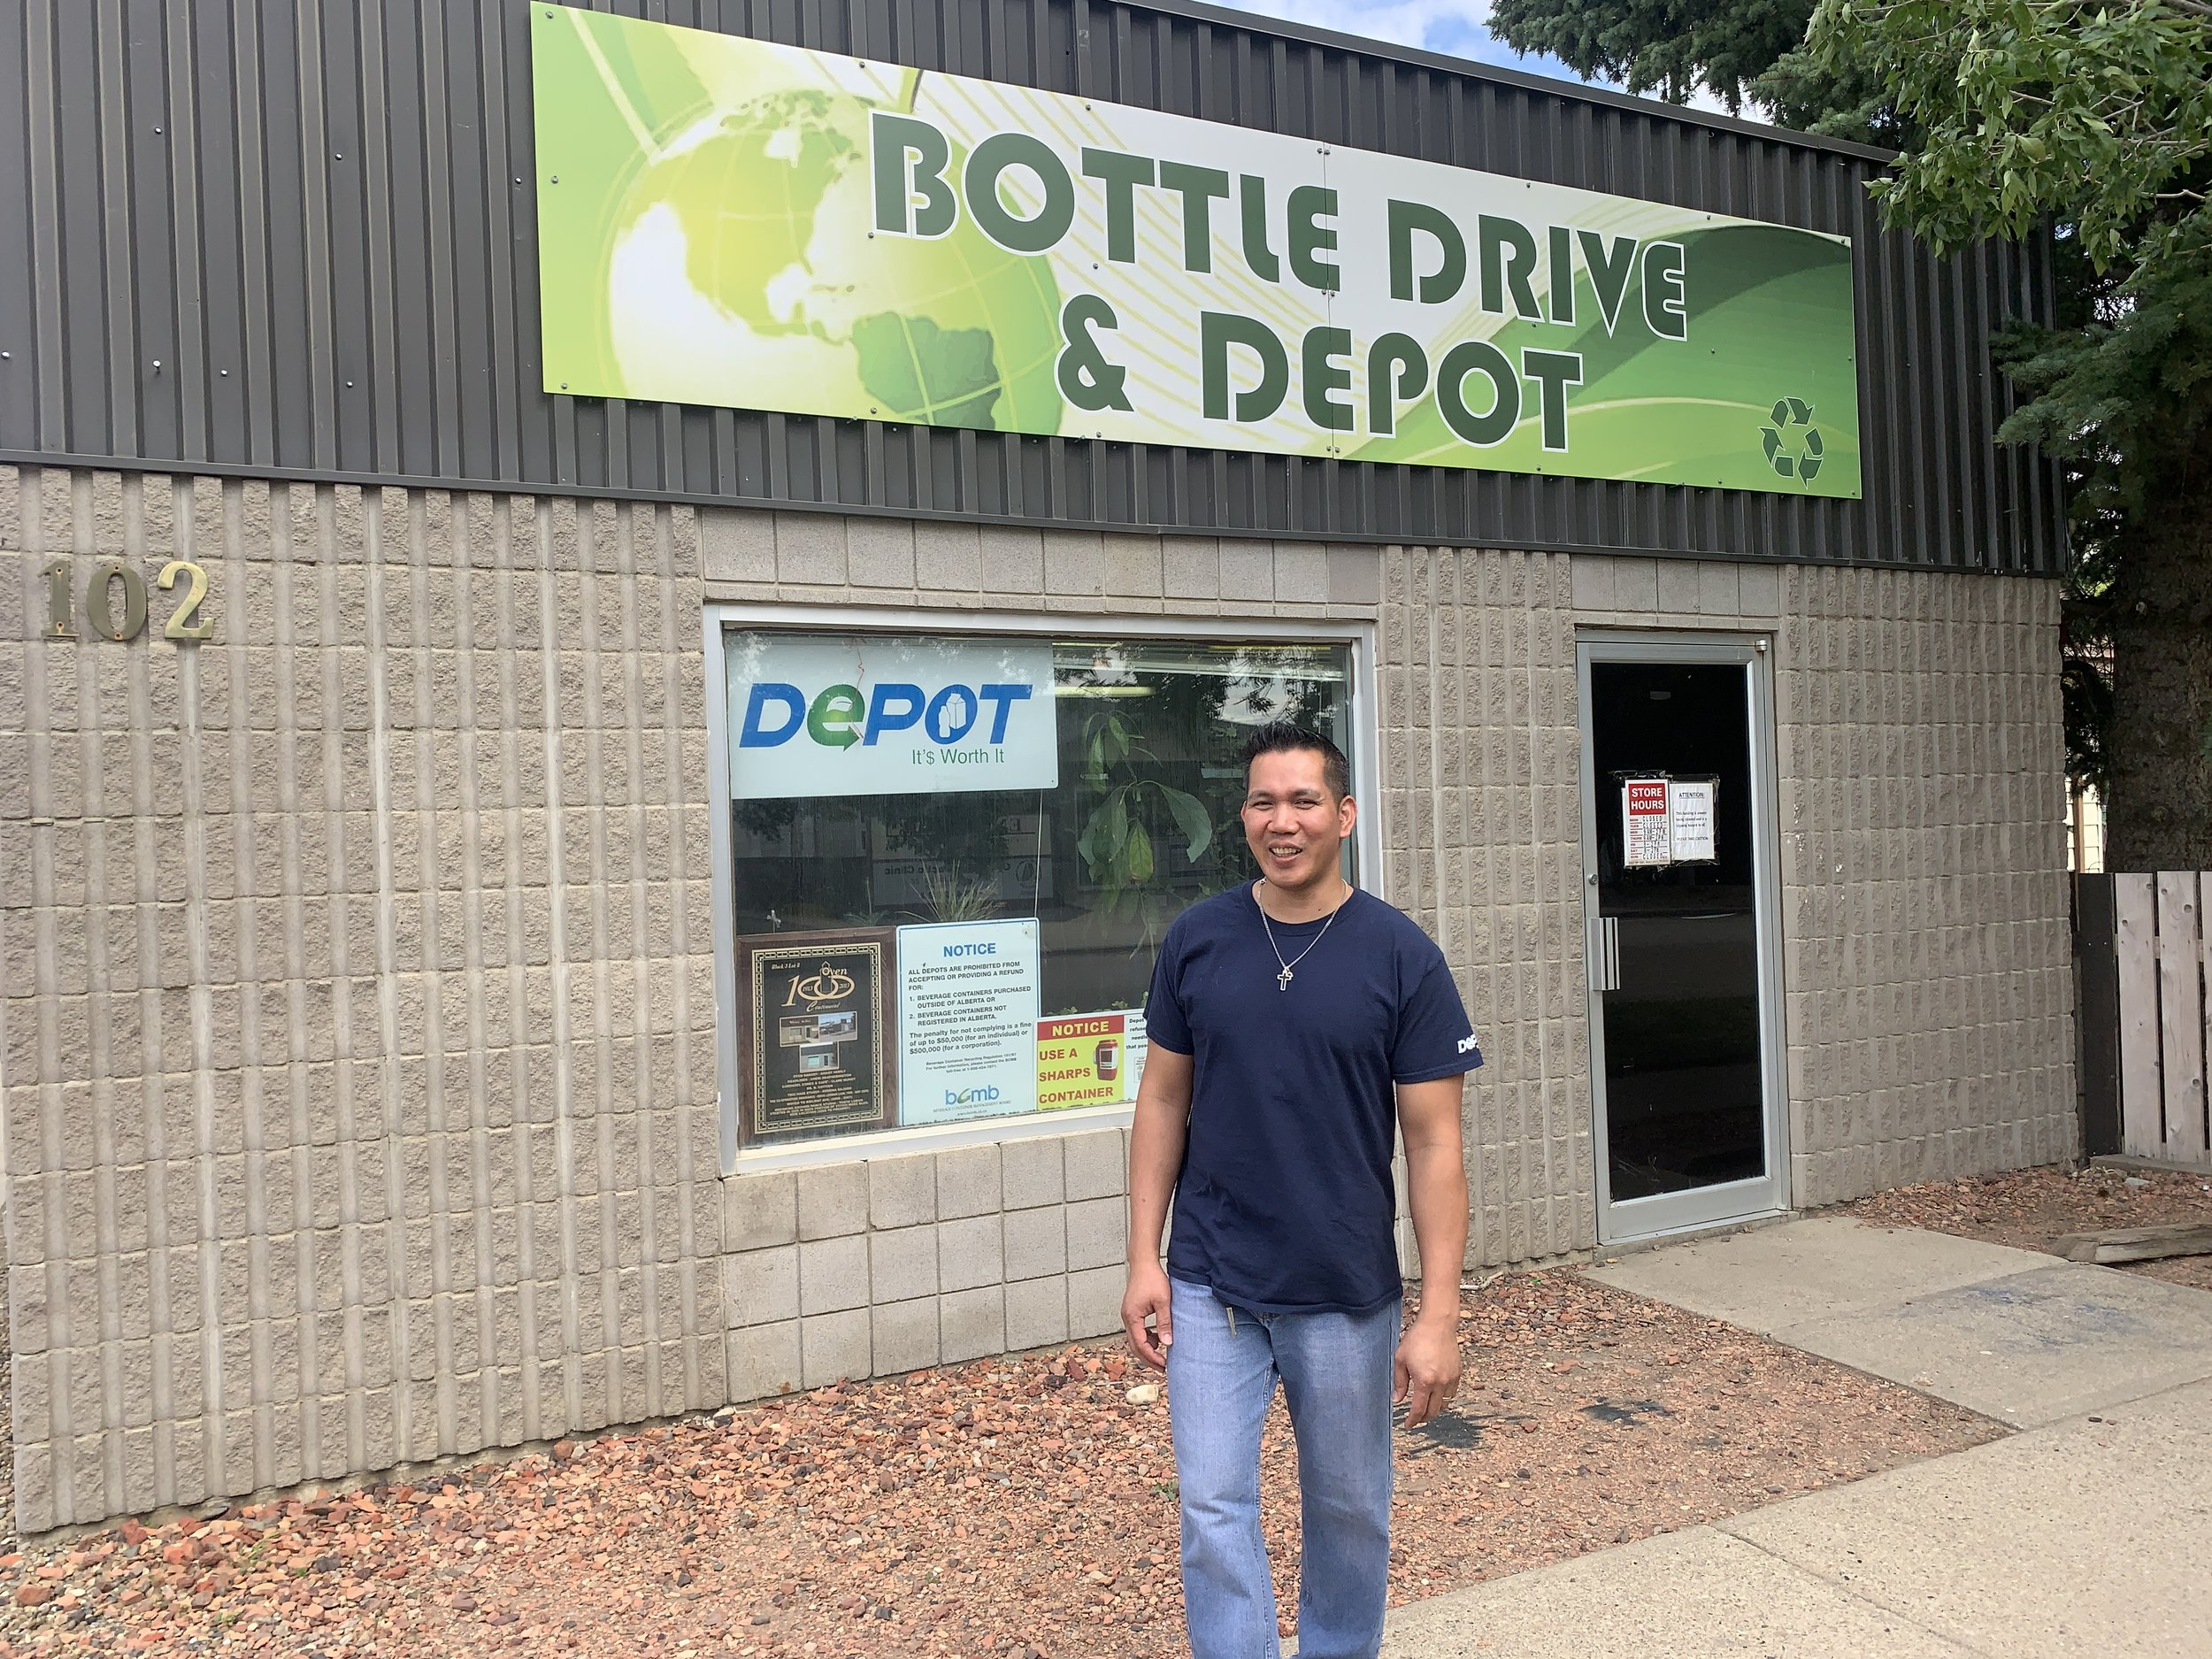 Oyen Bottle Drive & Depot